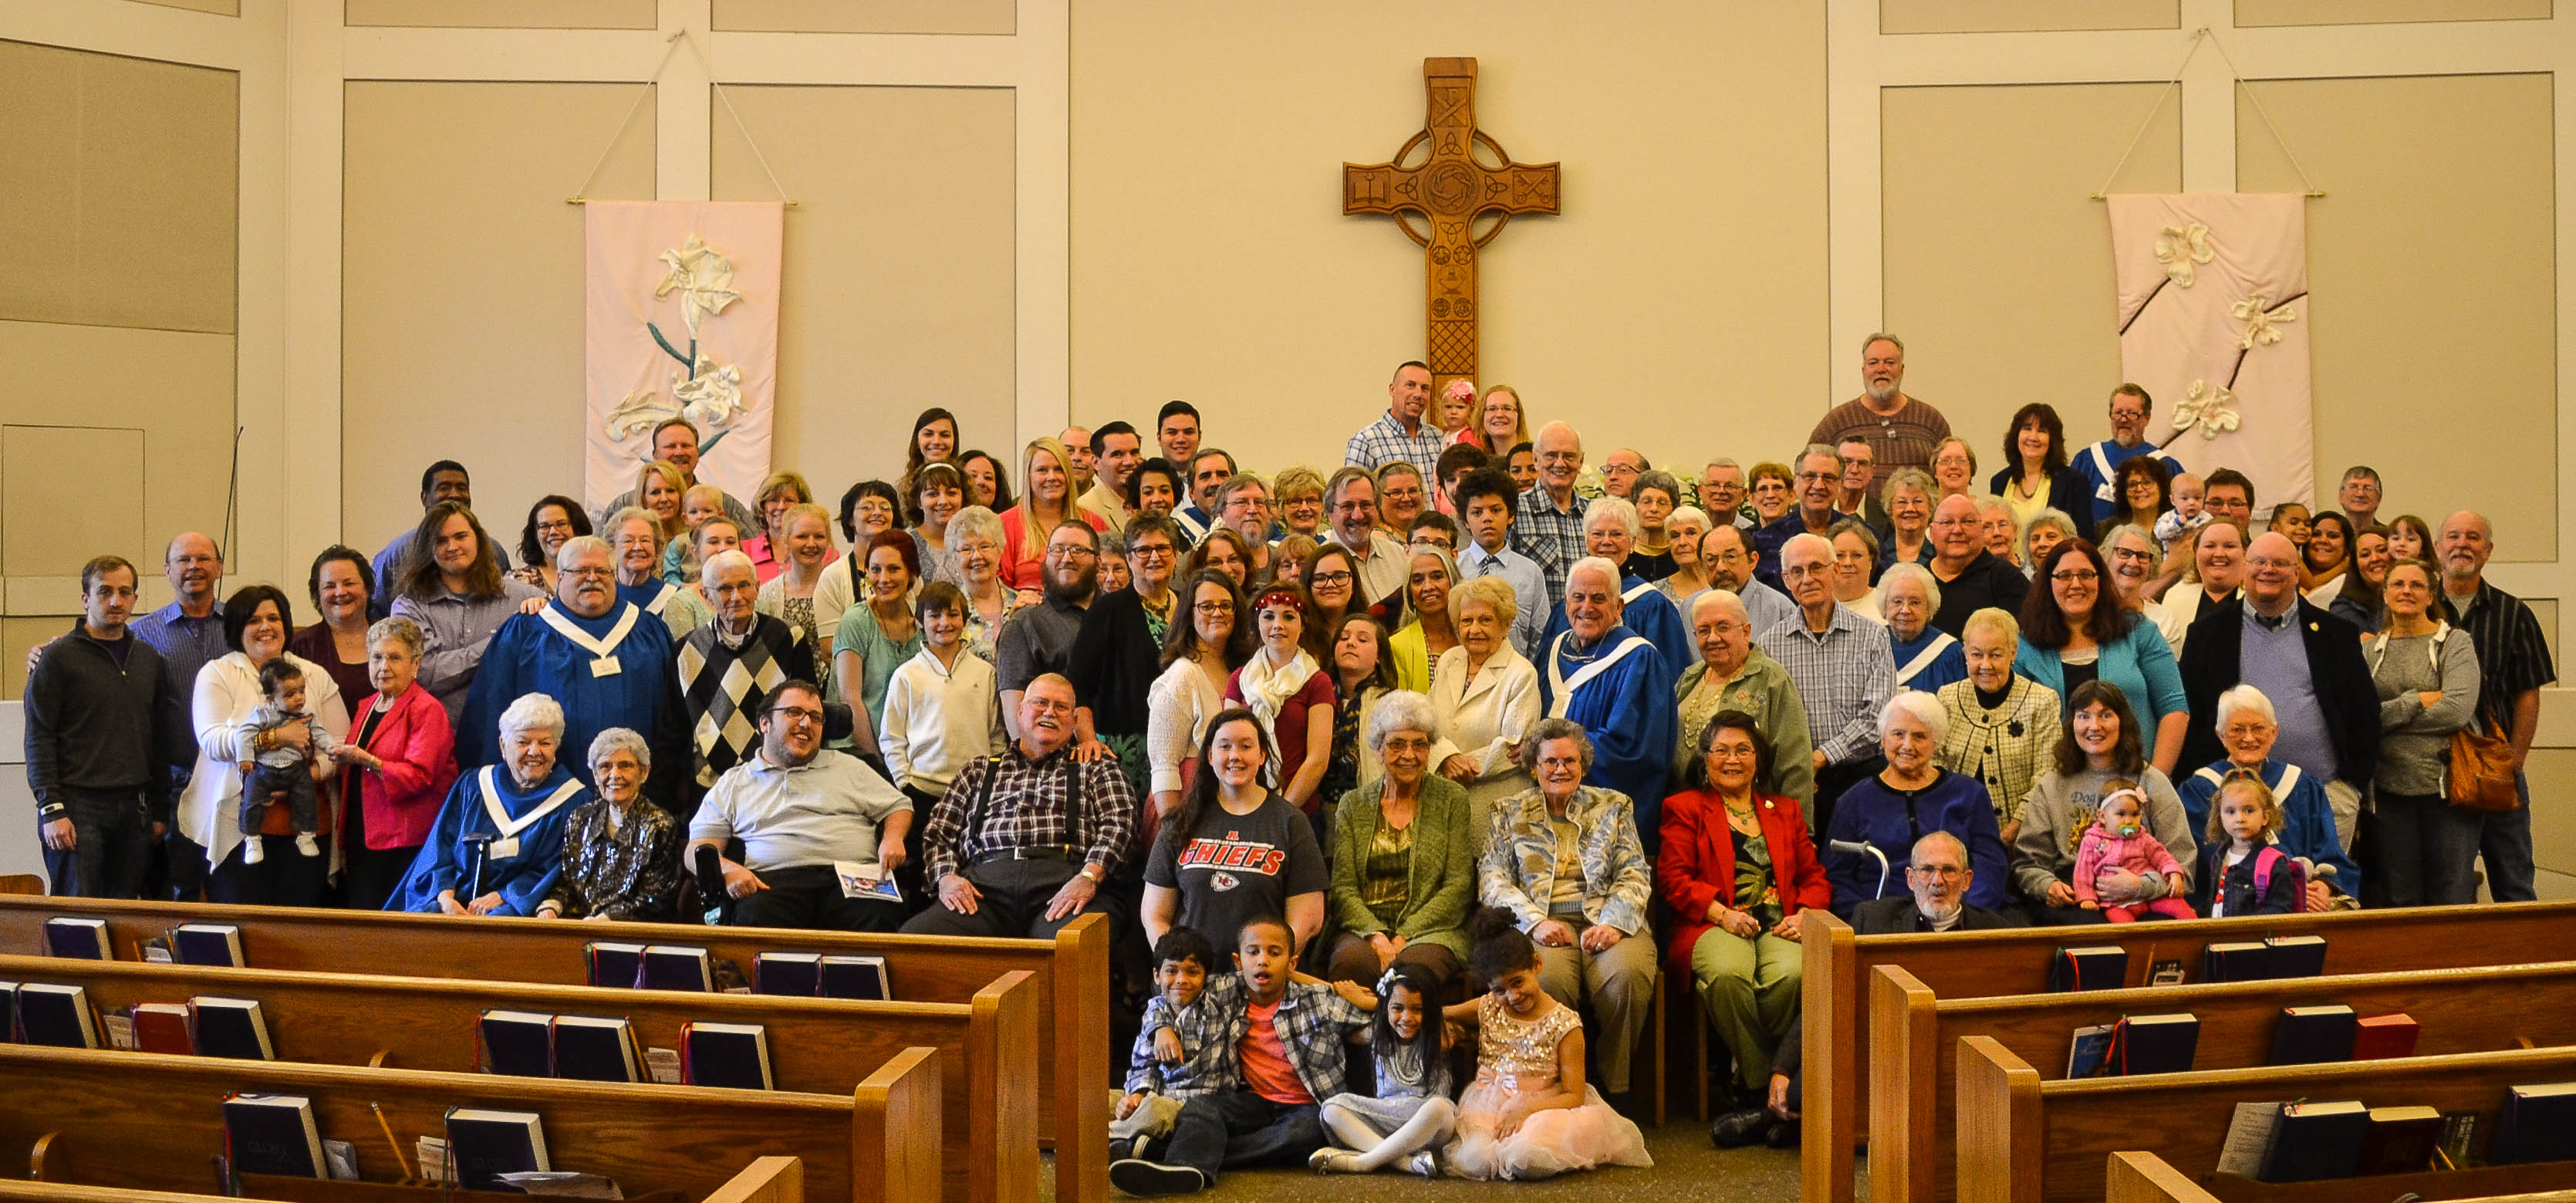 Church Family Photo-1